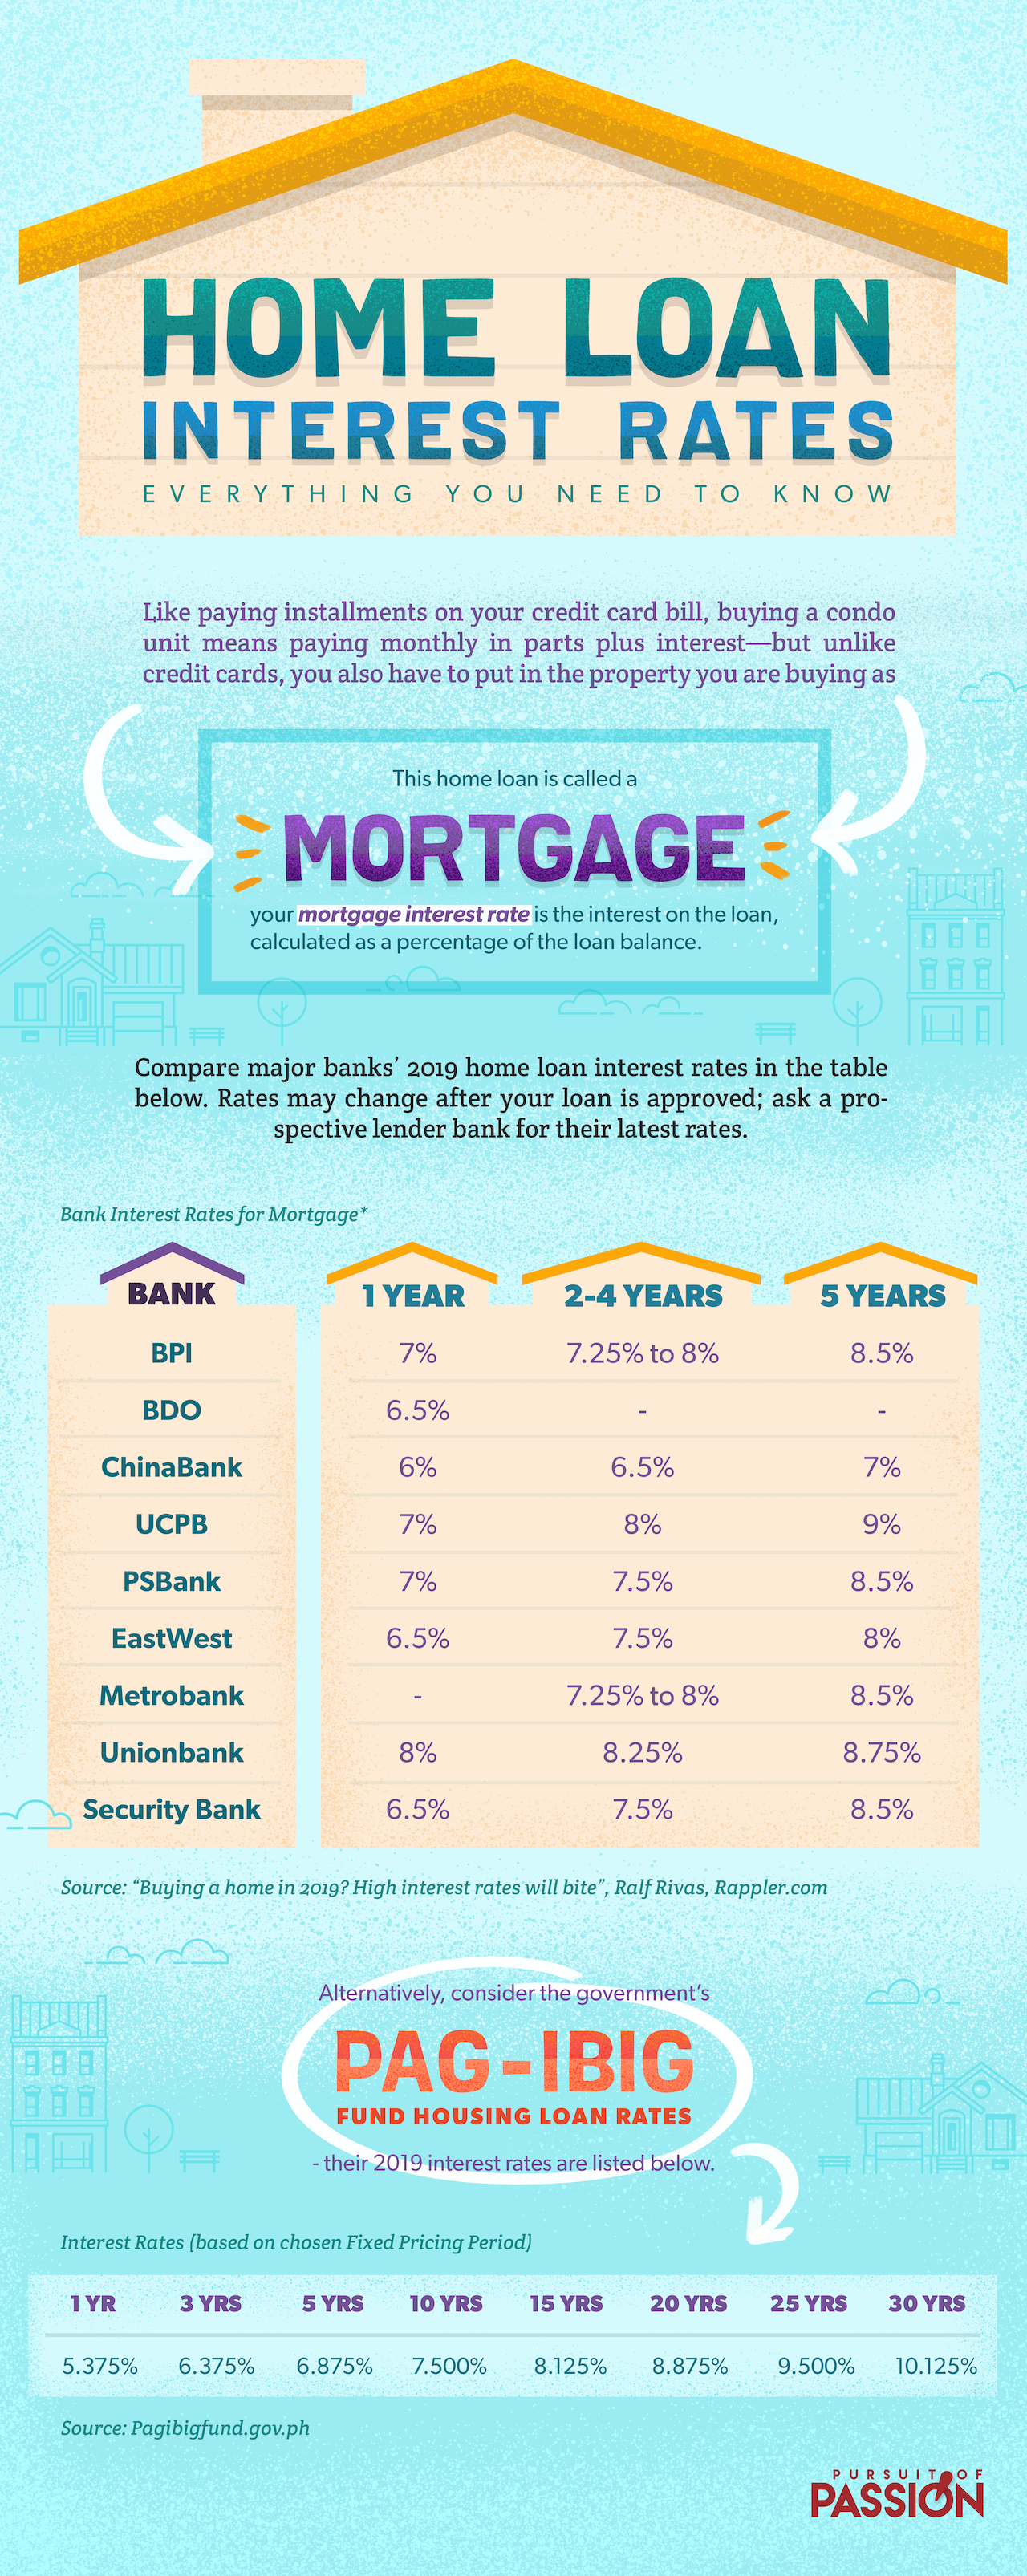 Home Loan Interest Rates Everything You Need To Know In 2020 Loan Interest Rates Mortgage Interest Rates Interest Rates